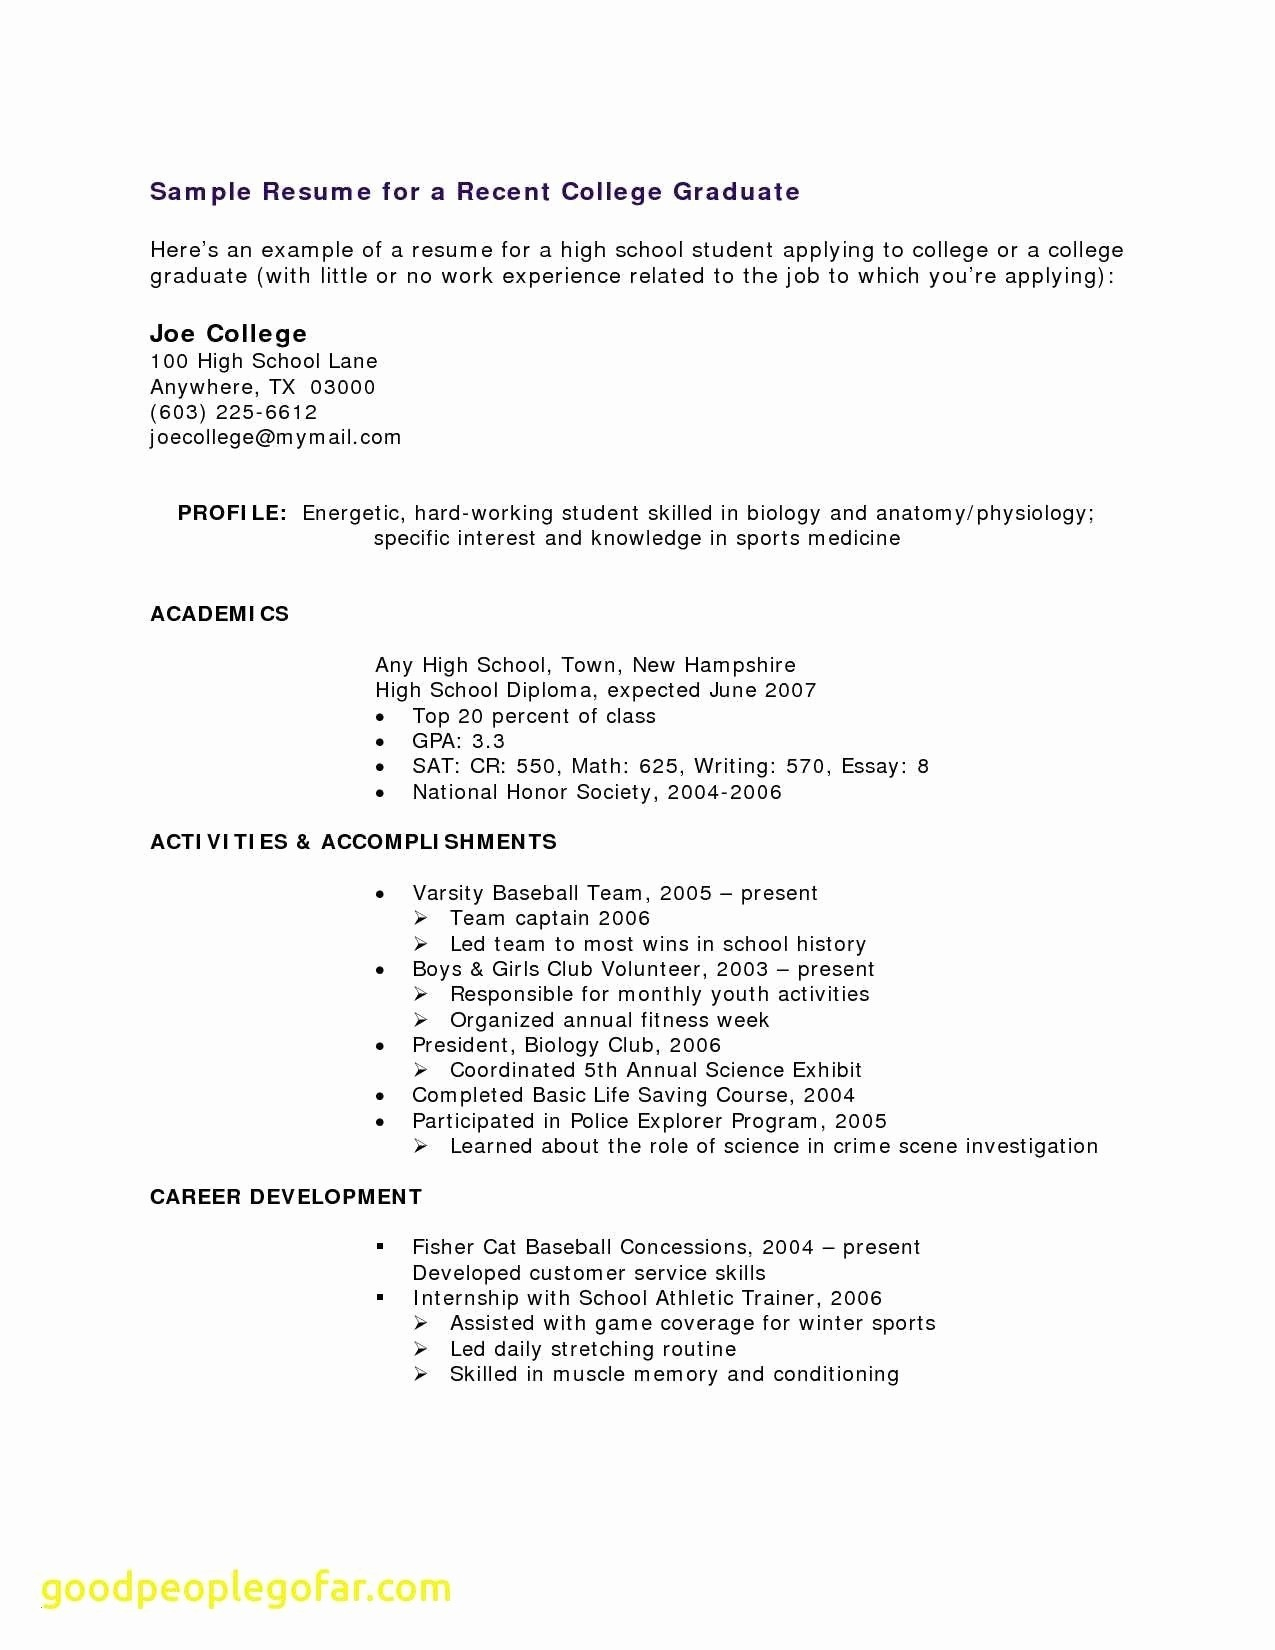 Resumes for College Students - Resume College Student Paragraphrewriter